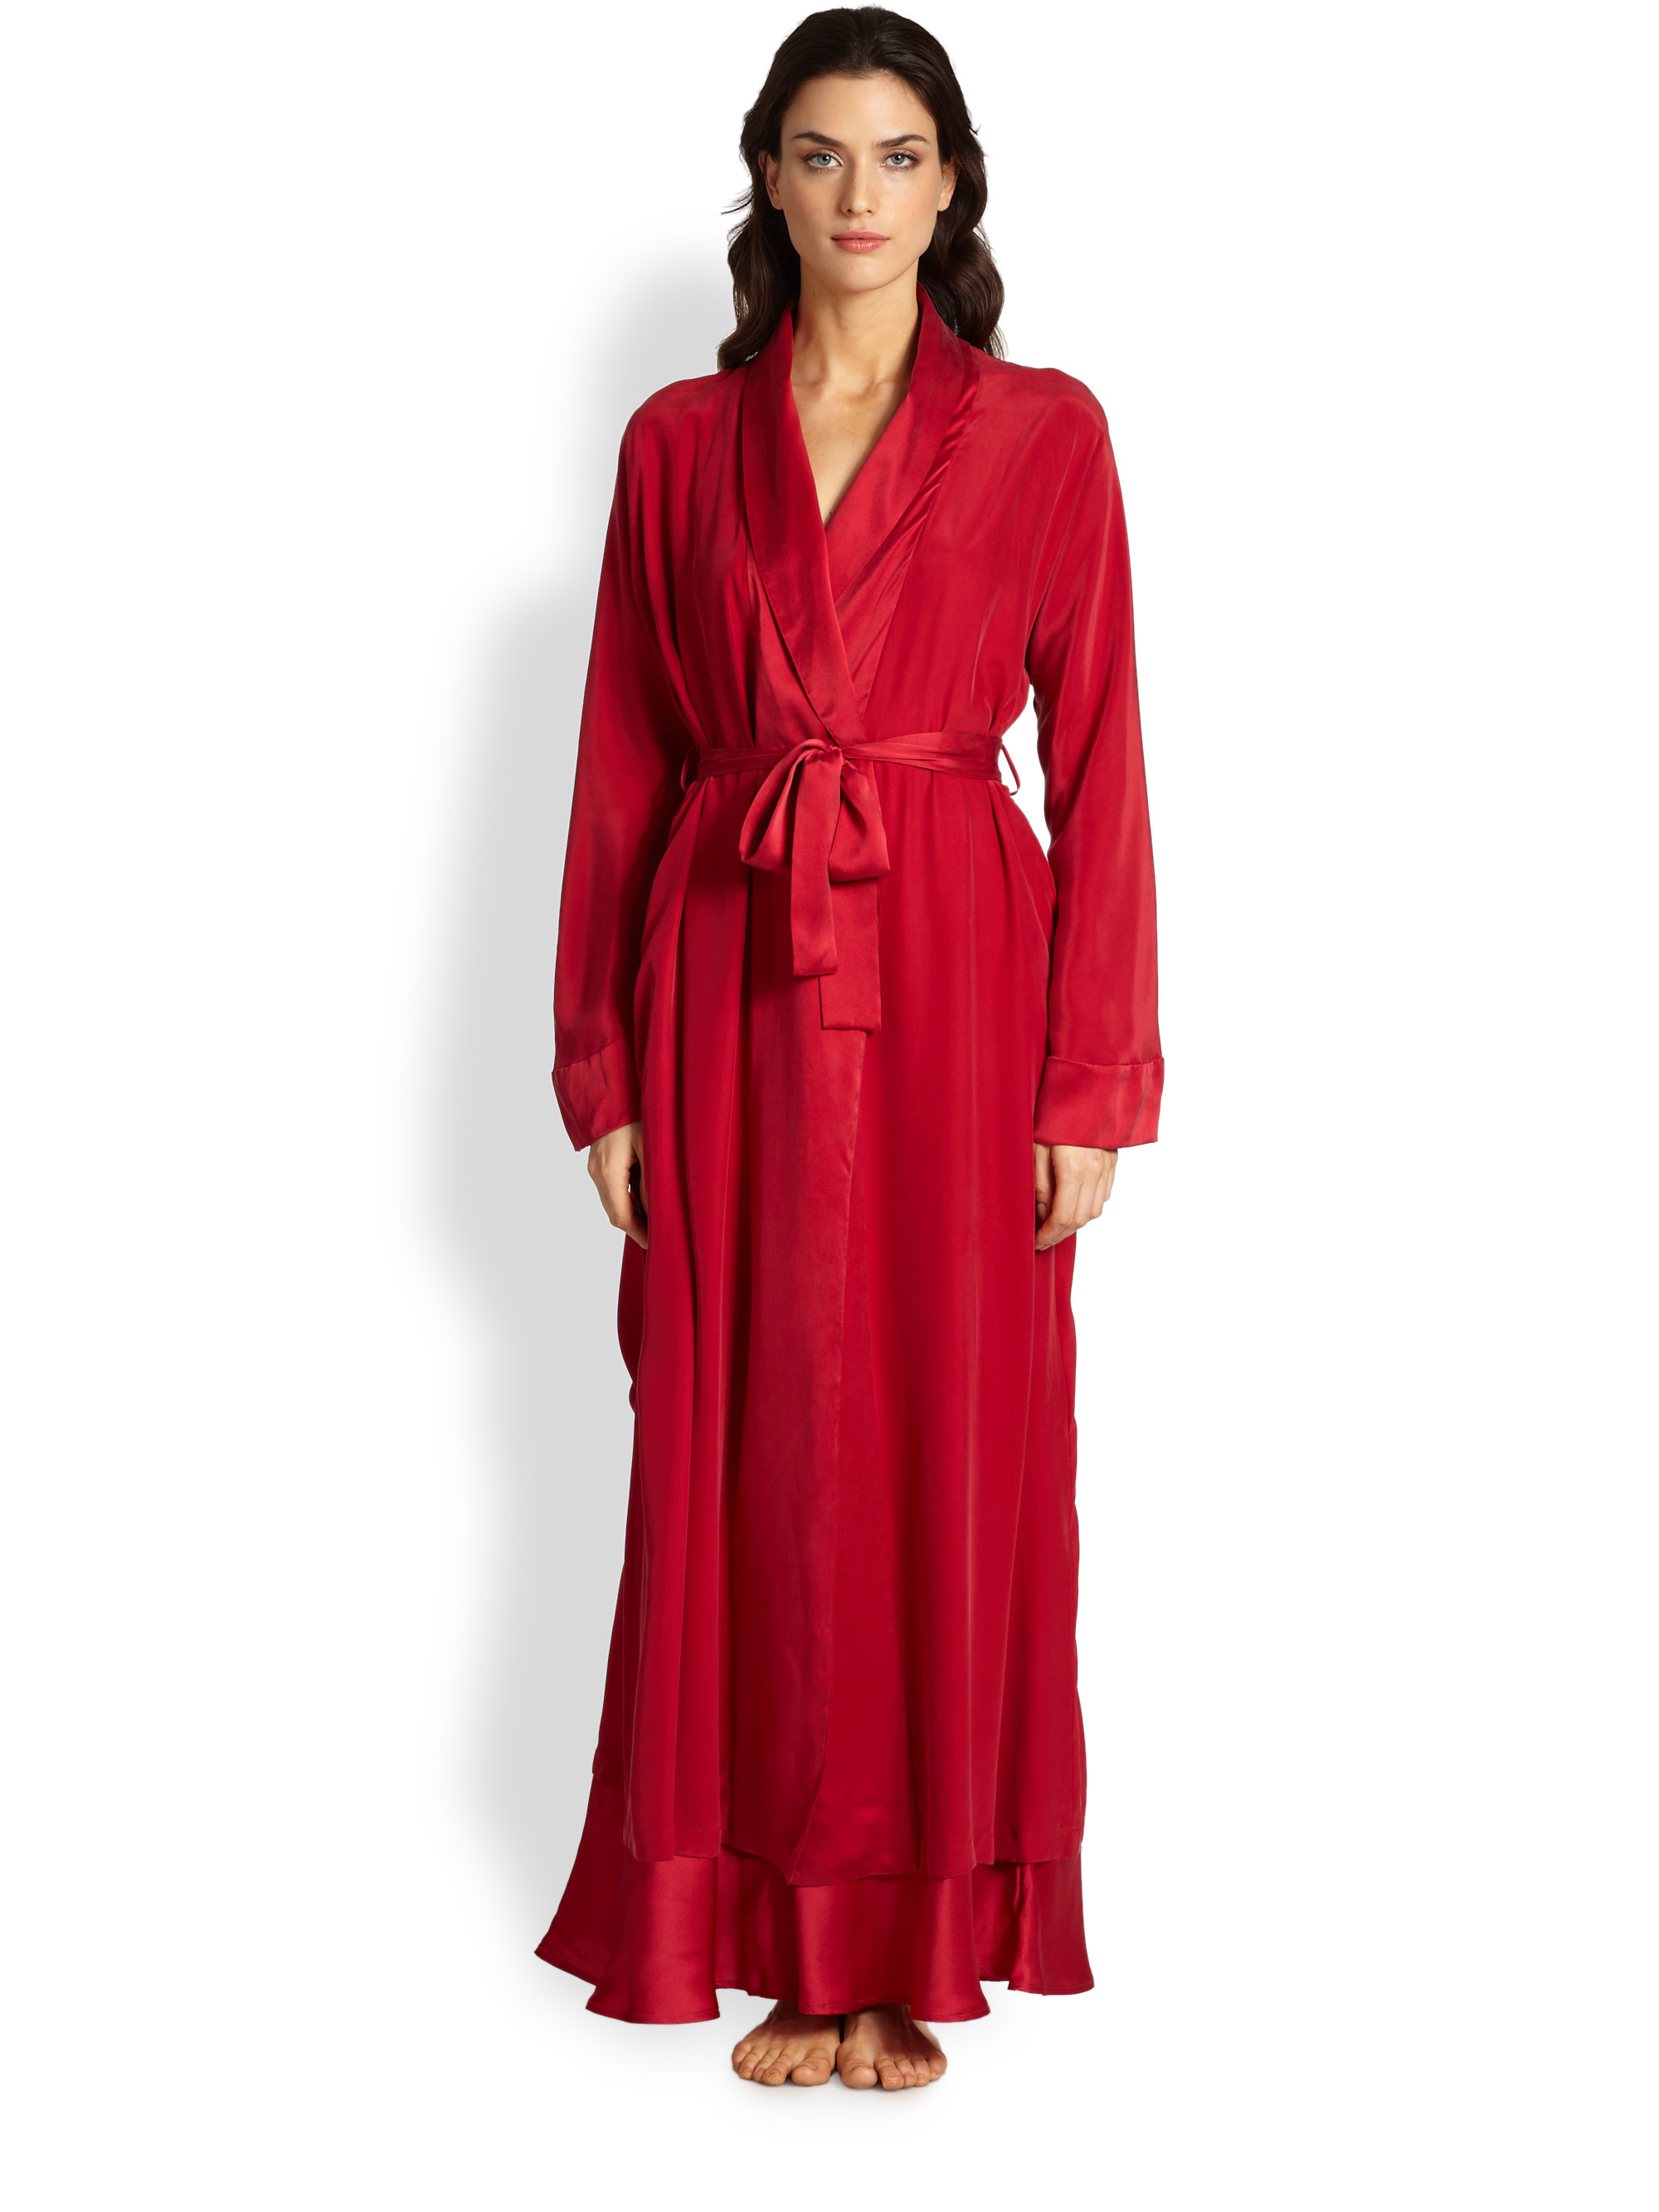 Red Black Two face Chinese Women's Robe Mujeres Pijama ... |Red Silk Robe